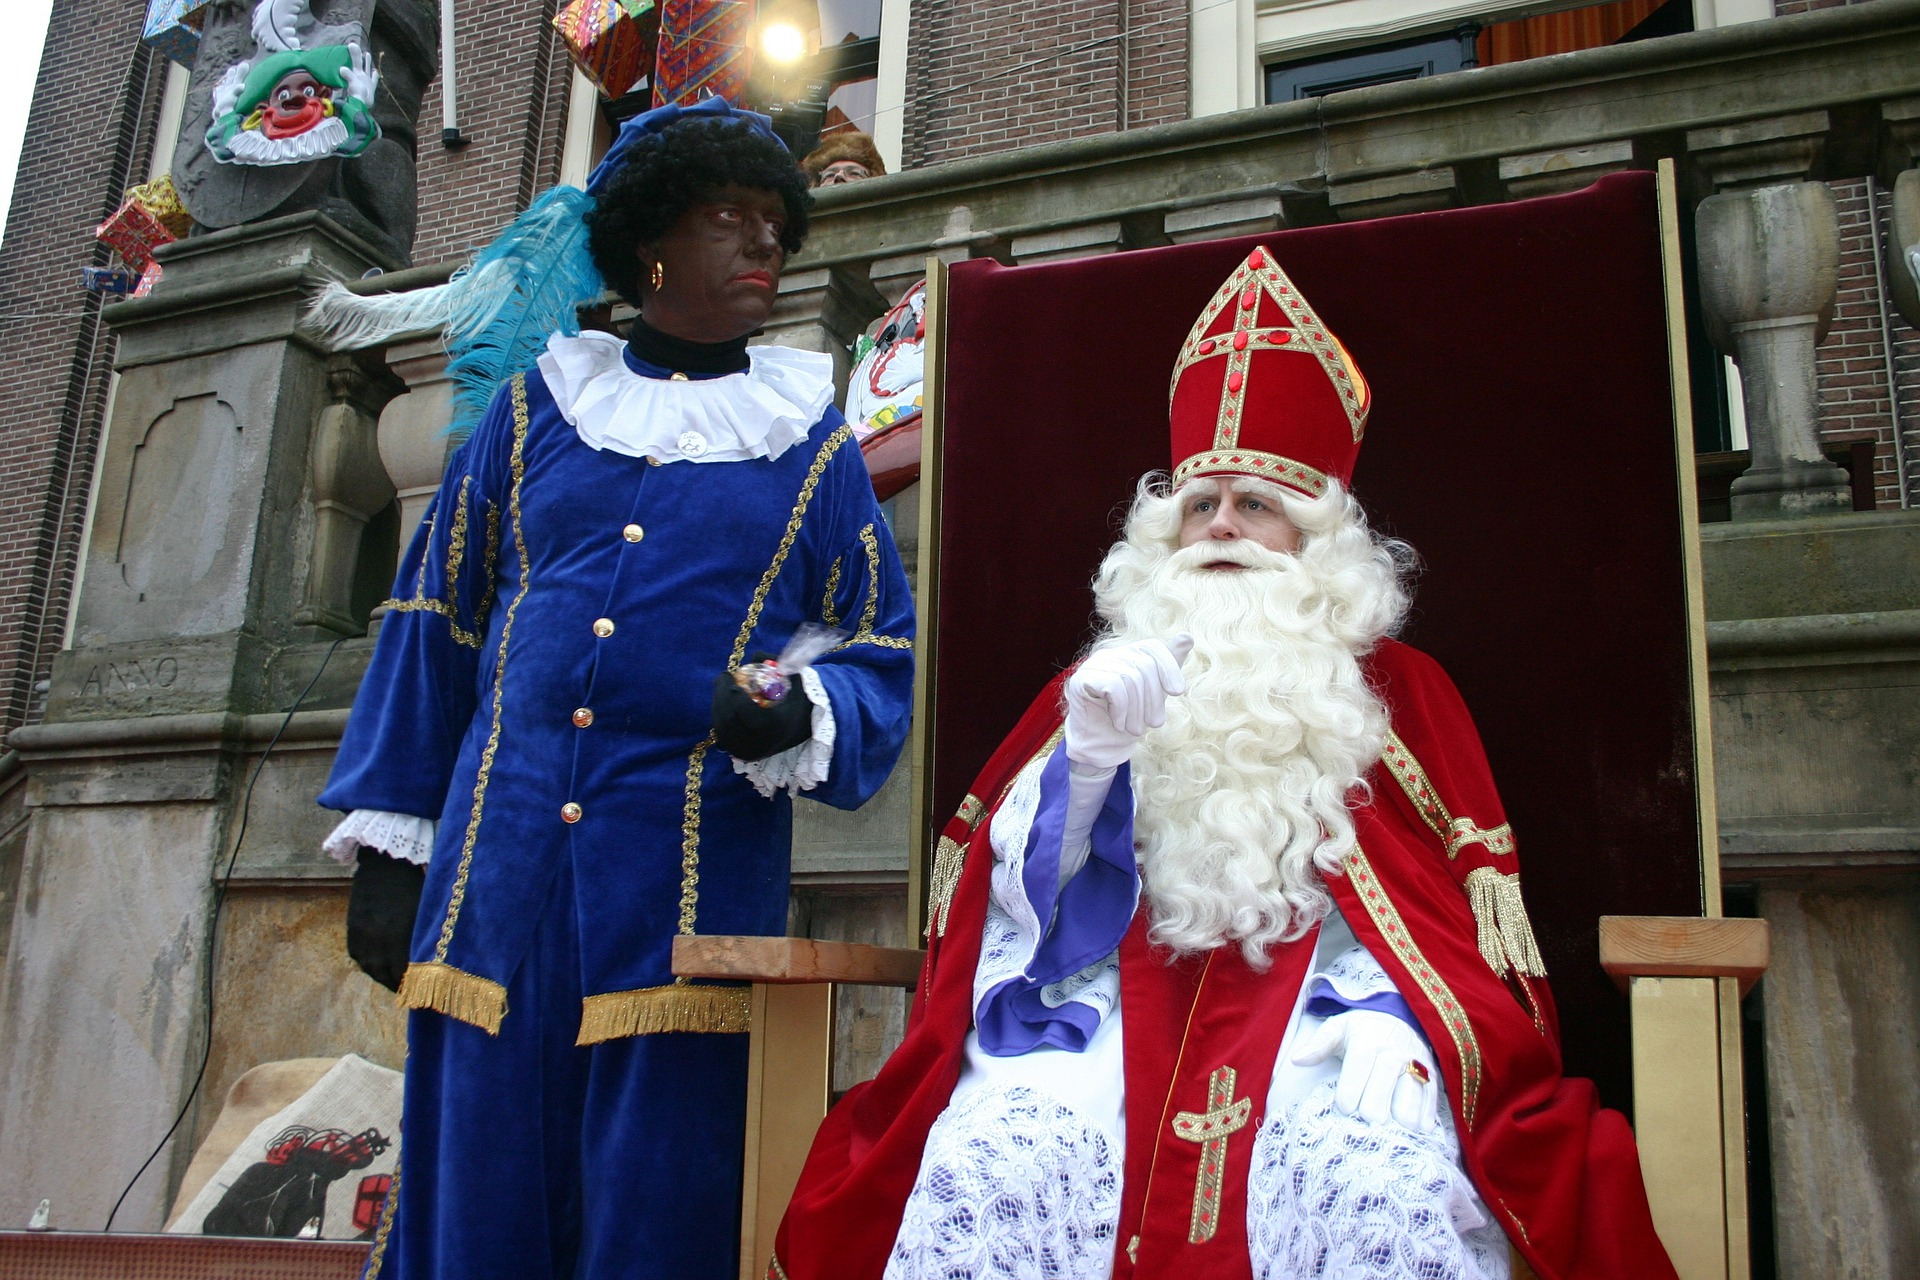 sint-and-piet-559519_1920.jpg